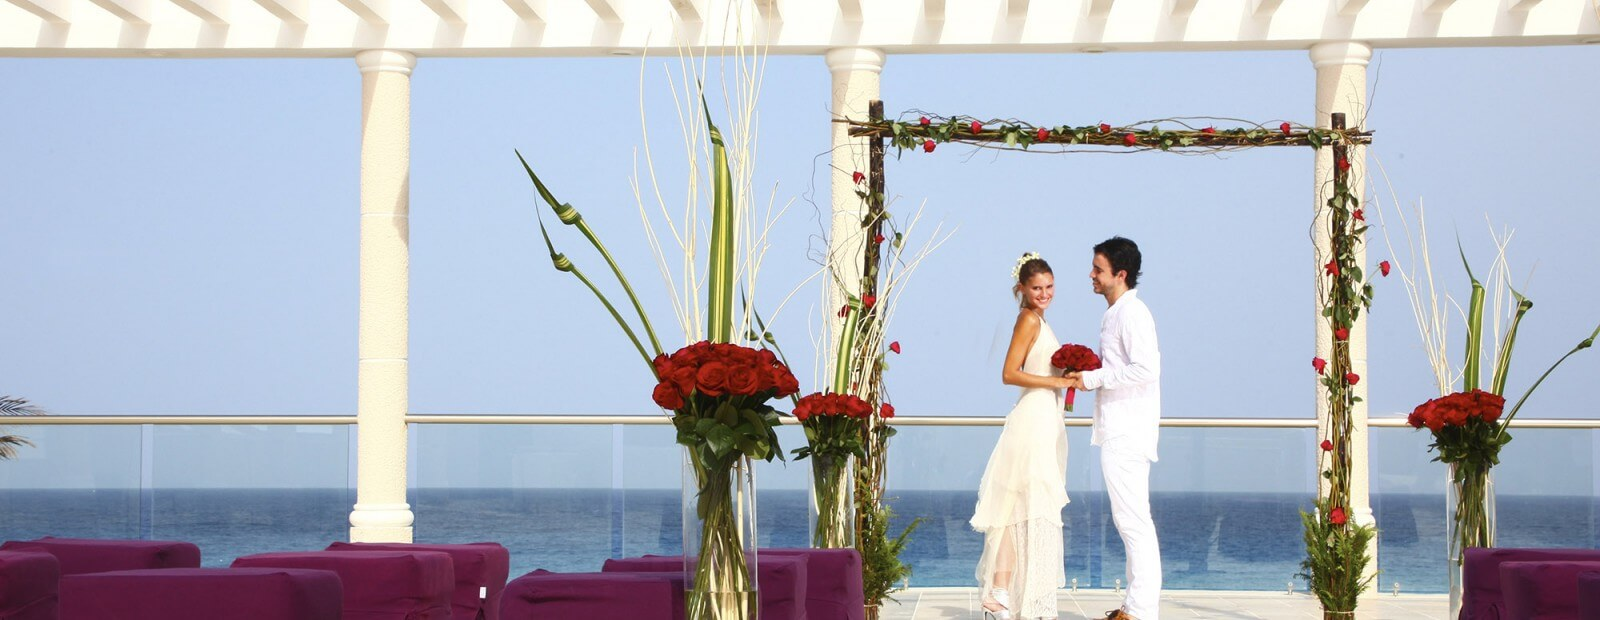 A couple getting married with the scarlet love wedding setting in Sandos Cancun